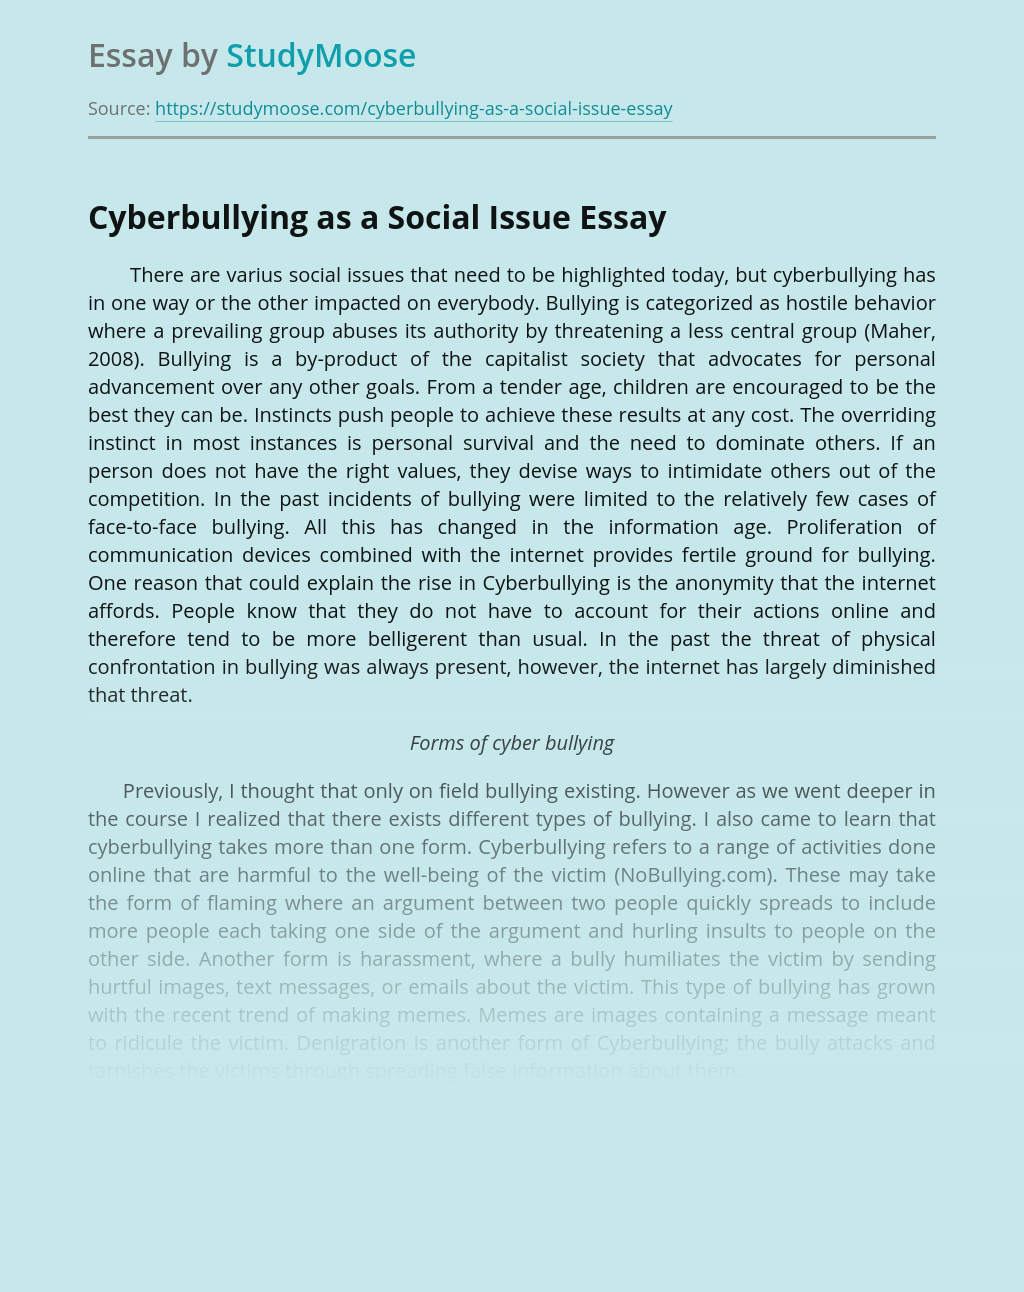 Cyberbullying as a Social Issue